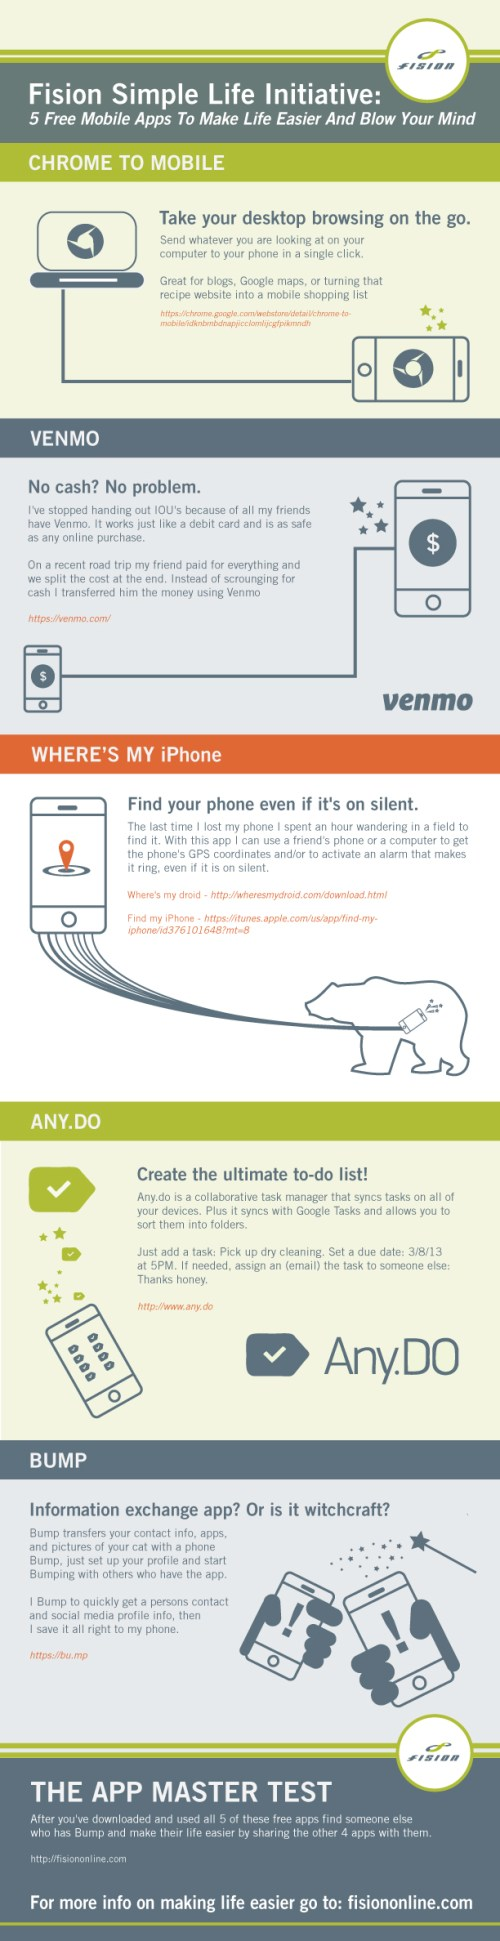 5MobileApps_Infographic